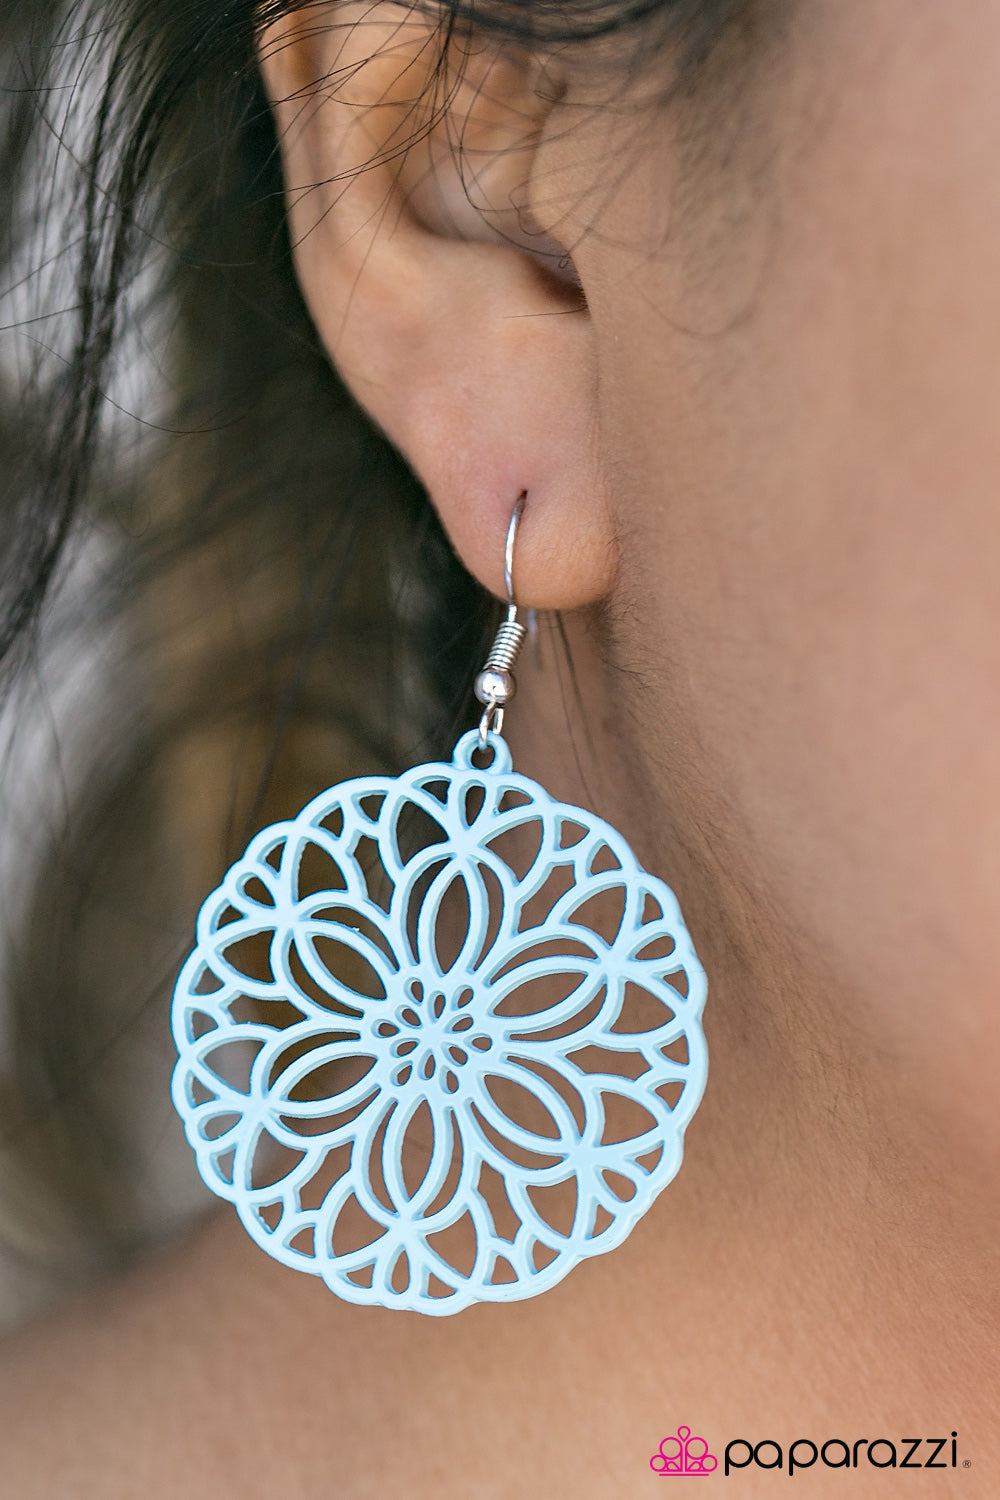 Having A Merry Time - Blue - Paparazzi earrings